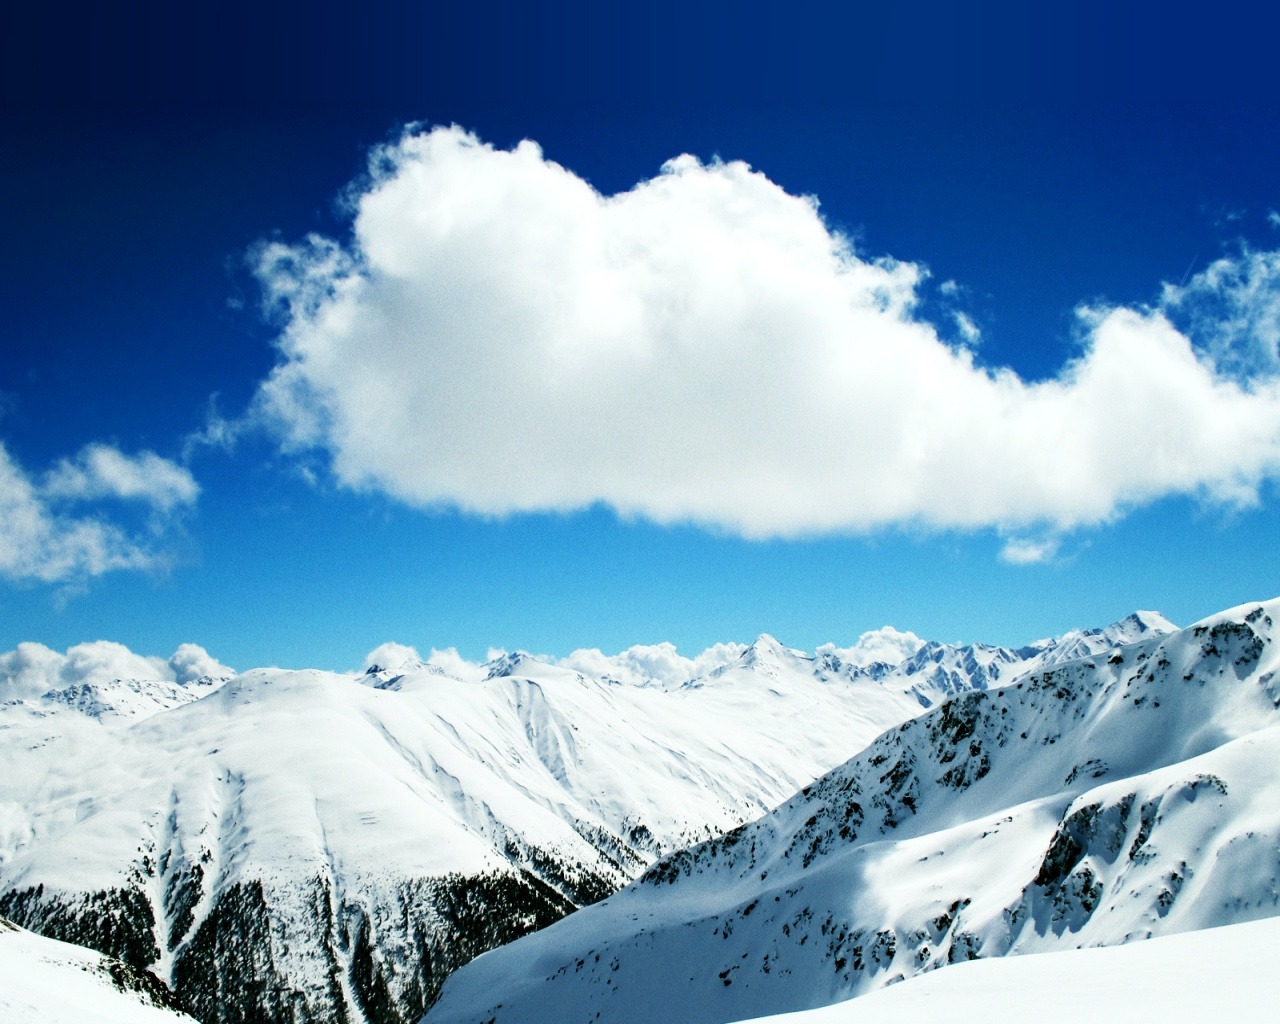 Full wallpaper snow mountain wallpapers - Hd snow mountain wallpaper ...